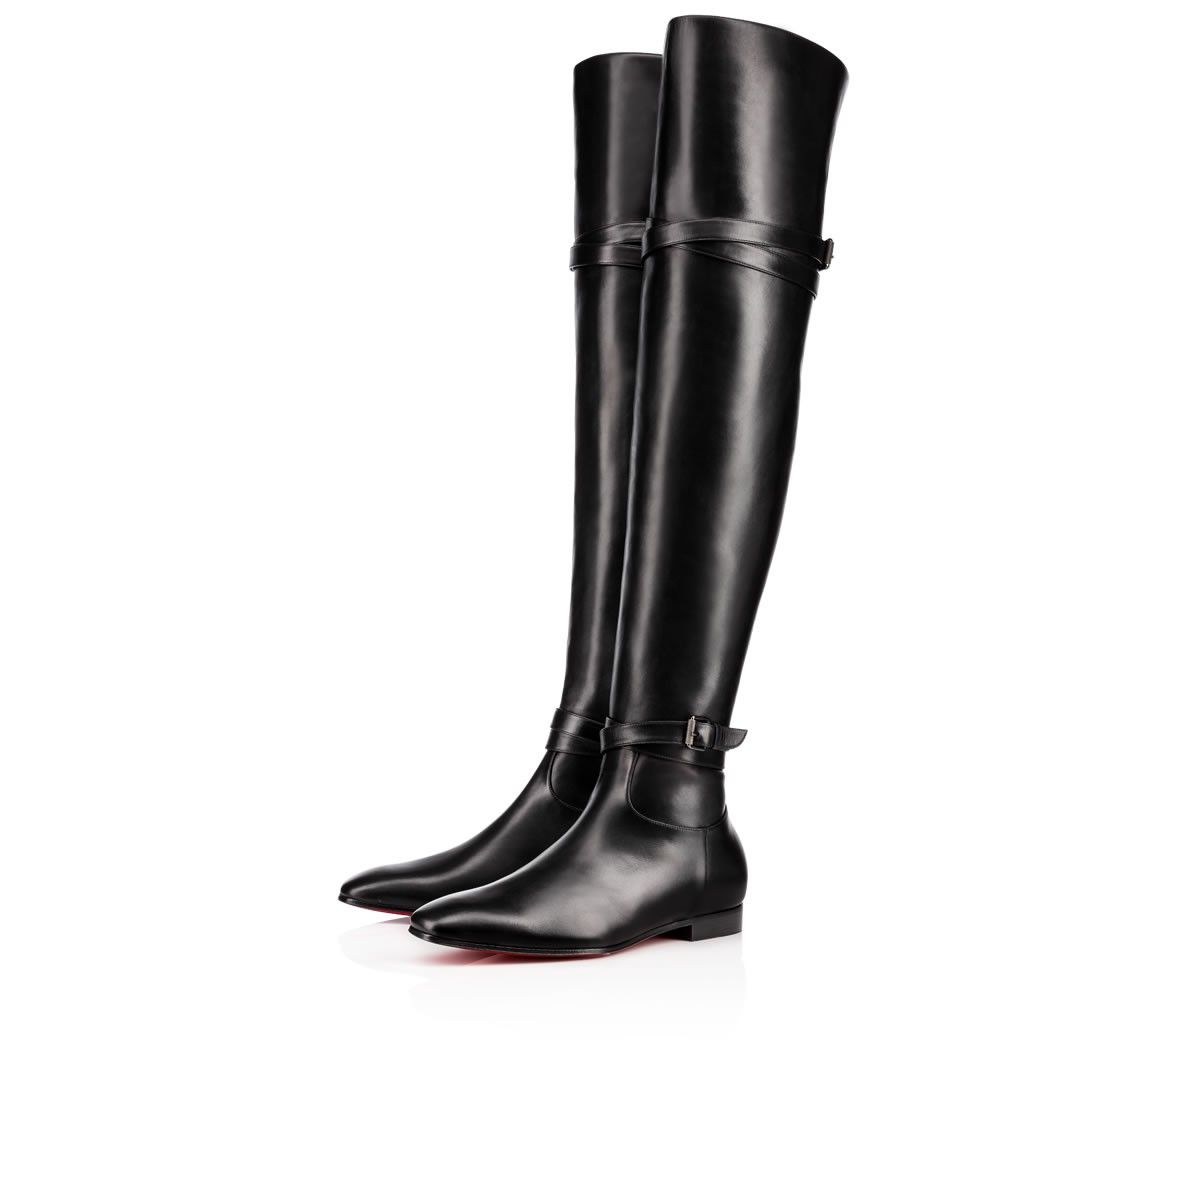 9140285f4fa ... thigh-high black leather boots with equestrian wrap-around buckle strap  detail at the ankle and knee and an interior side zip